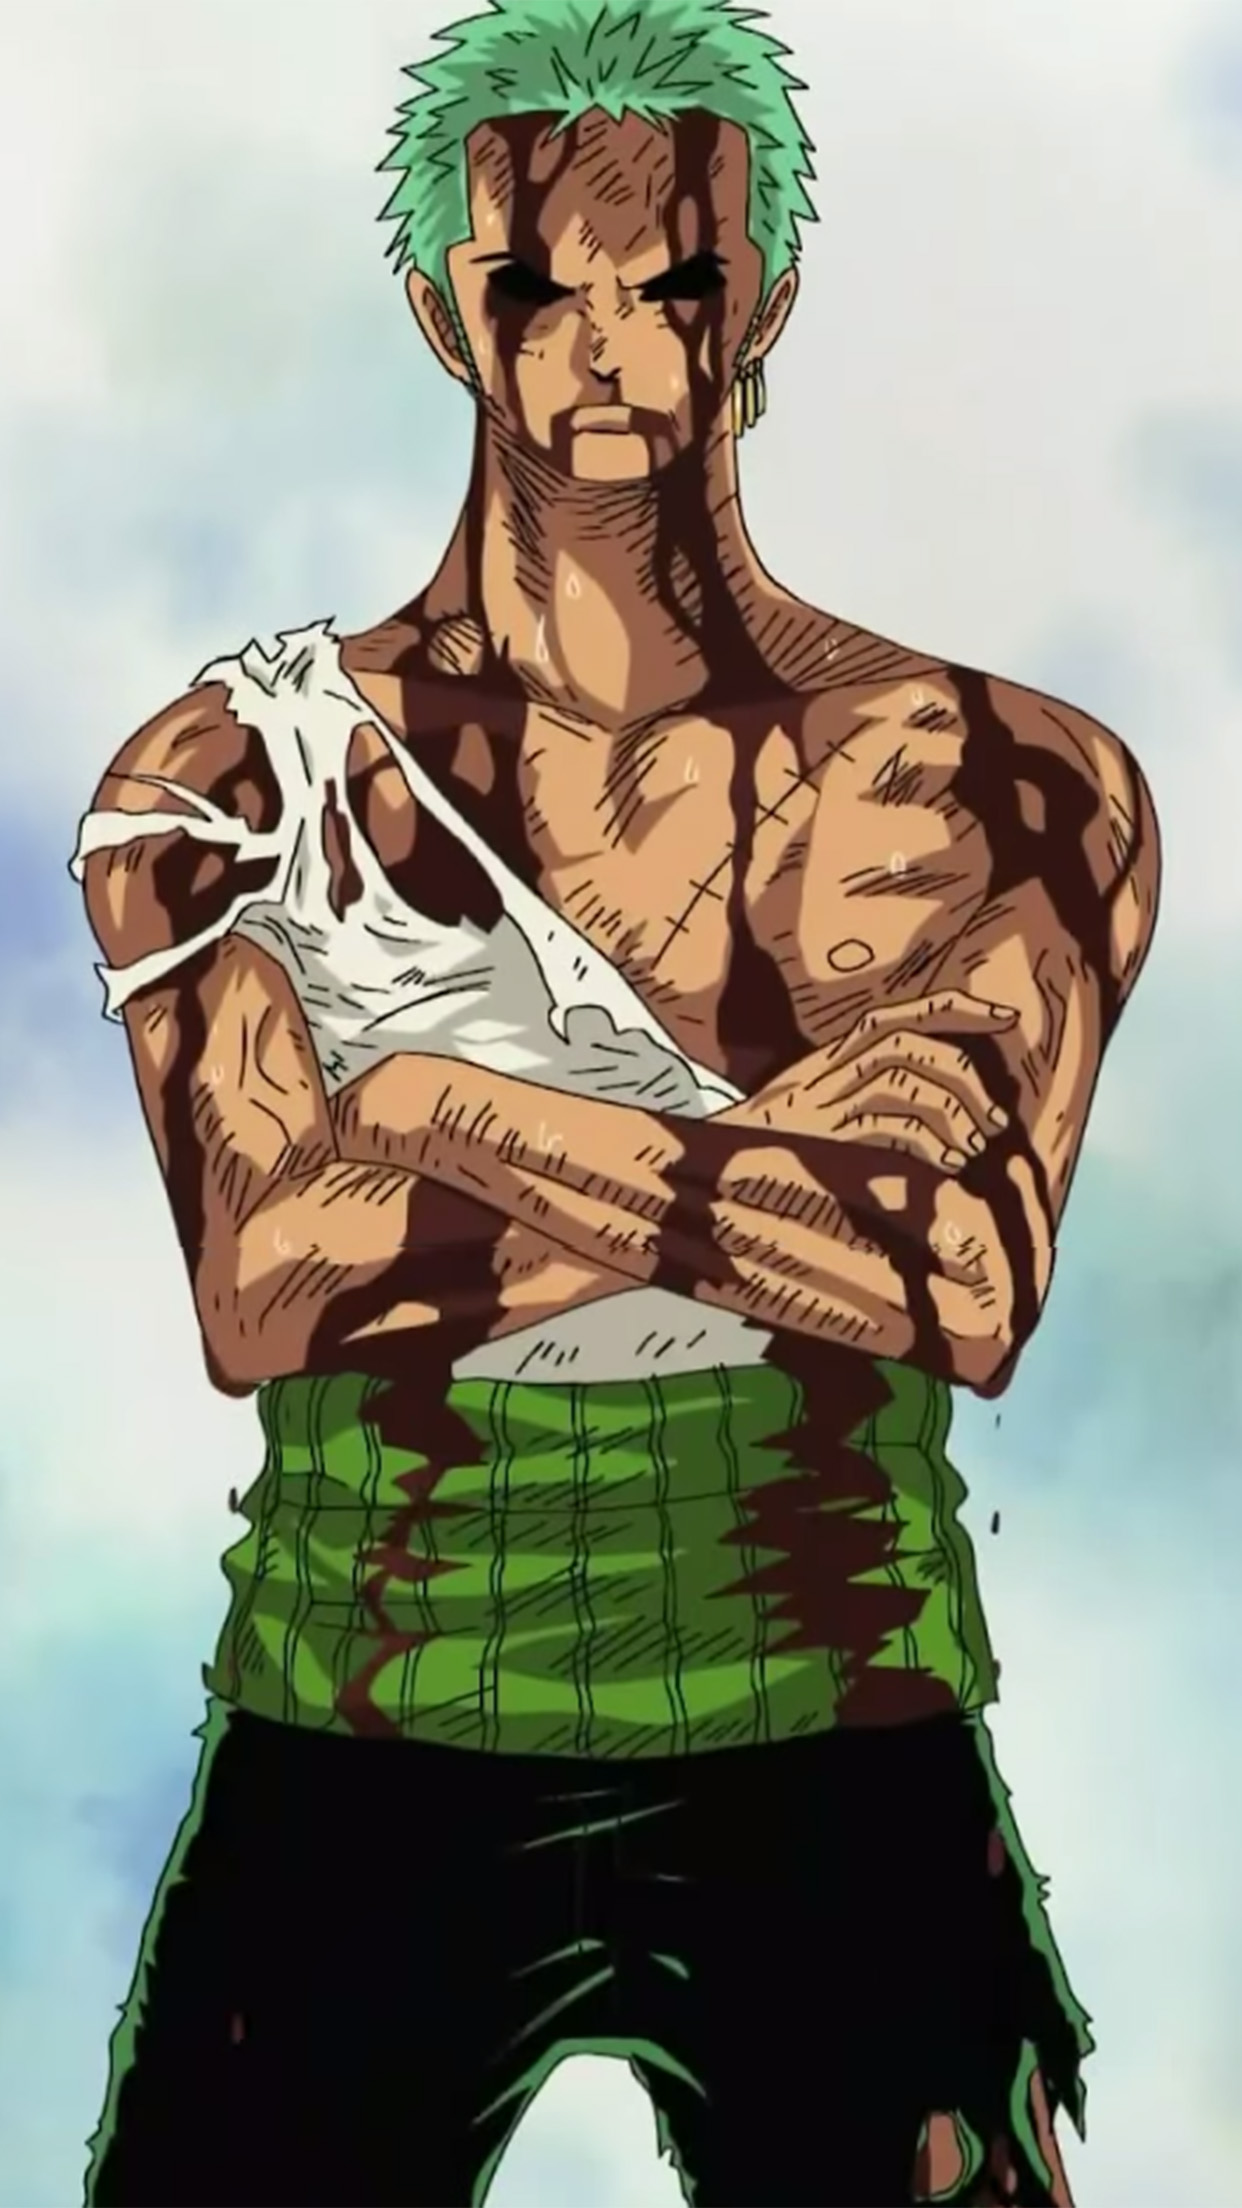 Roronoa Zoro Wallpaper For Iphone 11 Pro Max X 8 7 6 Free Download On 3wallpapers